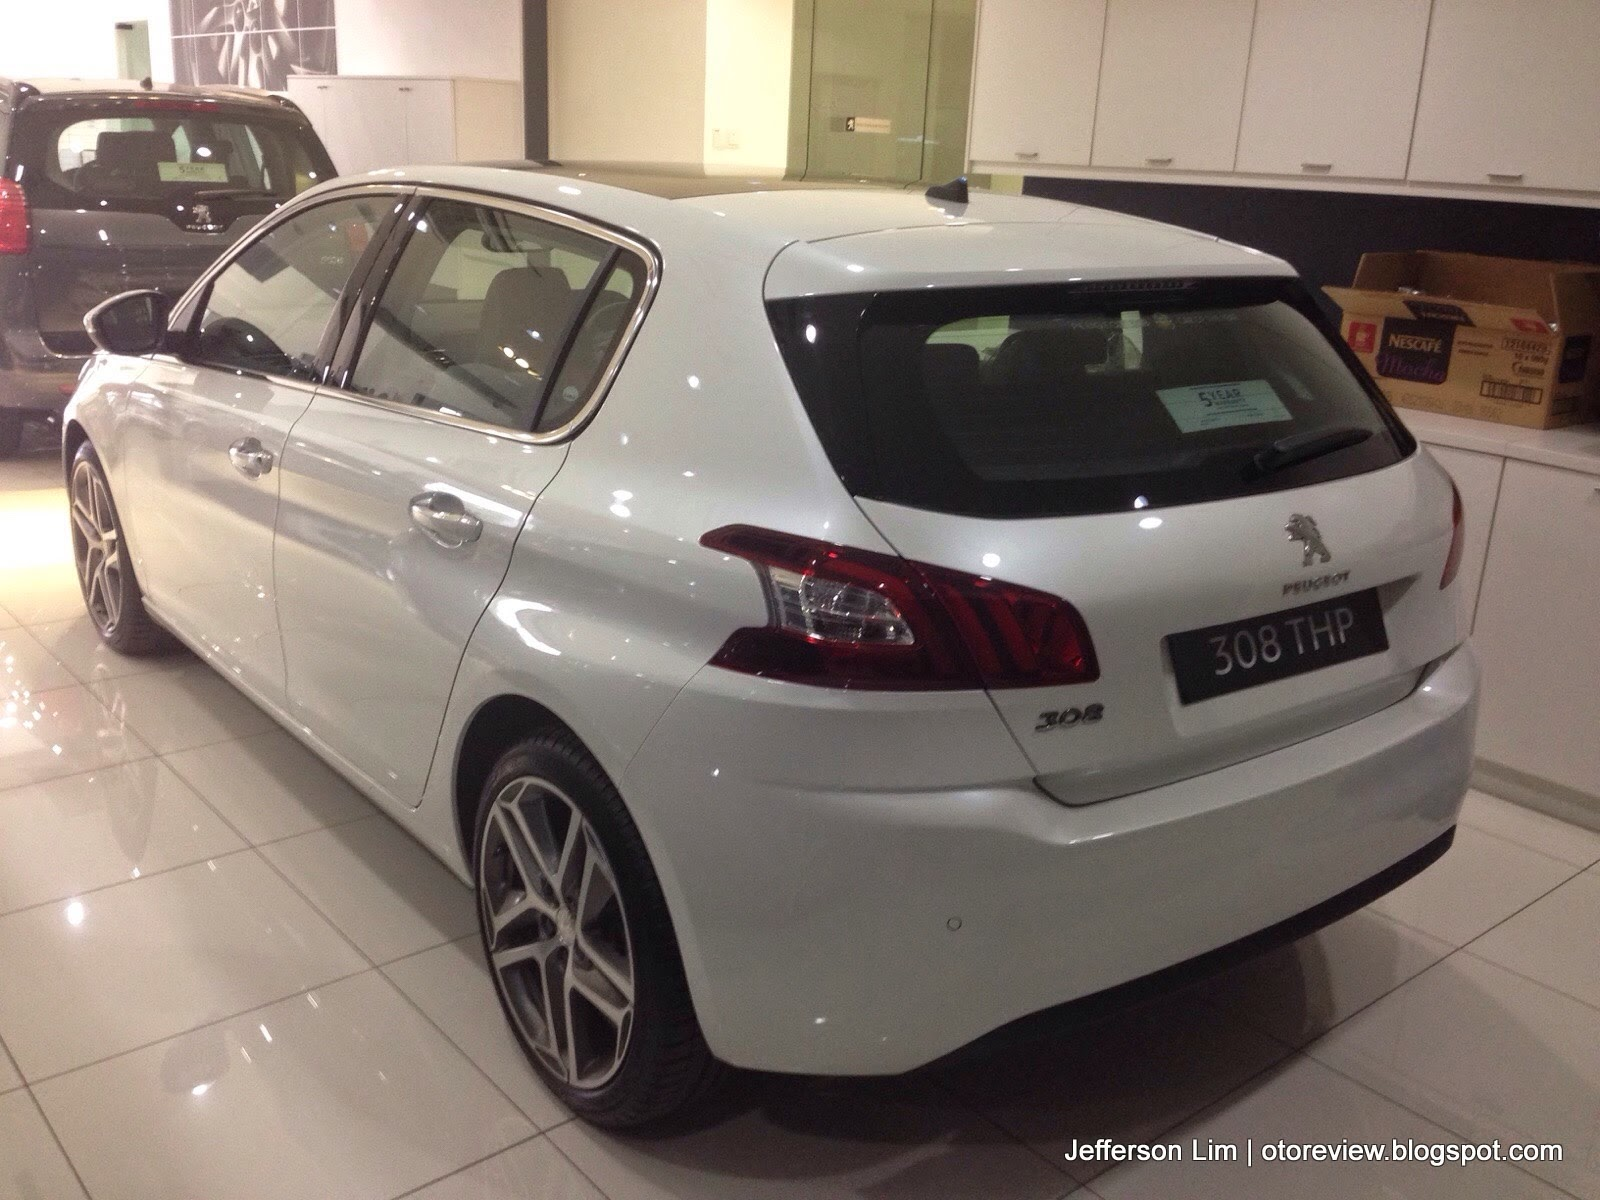 "otoreview.my - ""otomobil"" review: close up: new peugeot 308 thp"